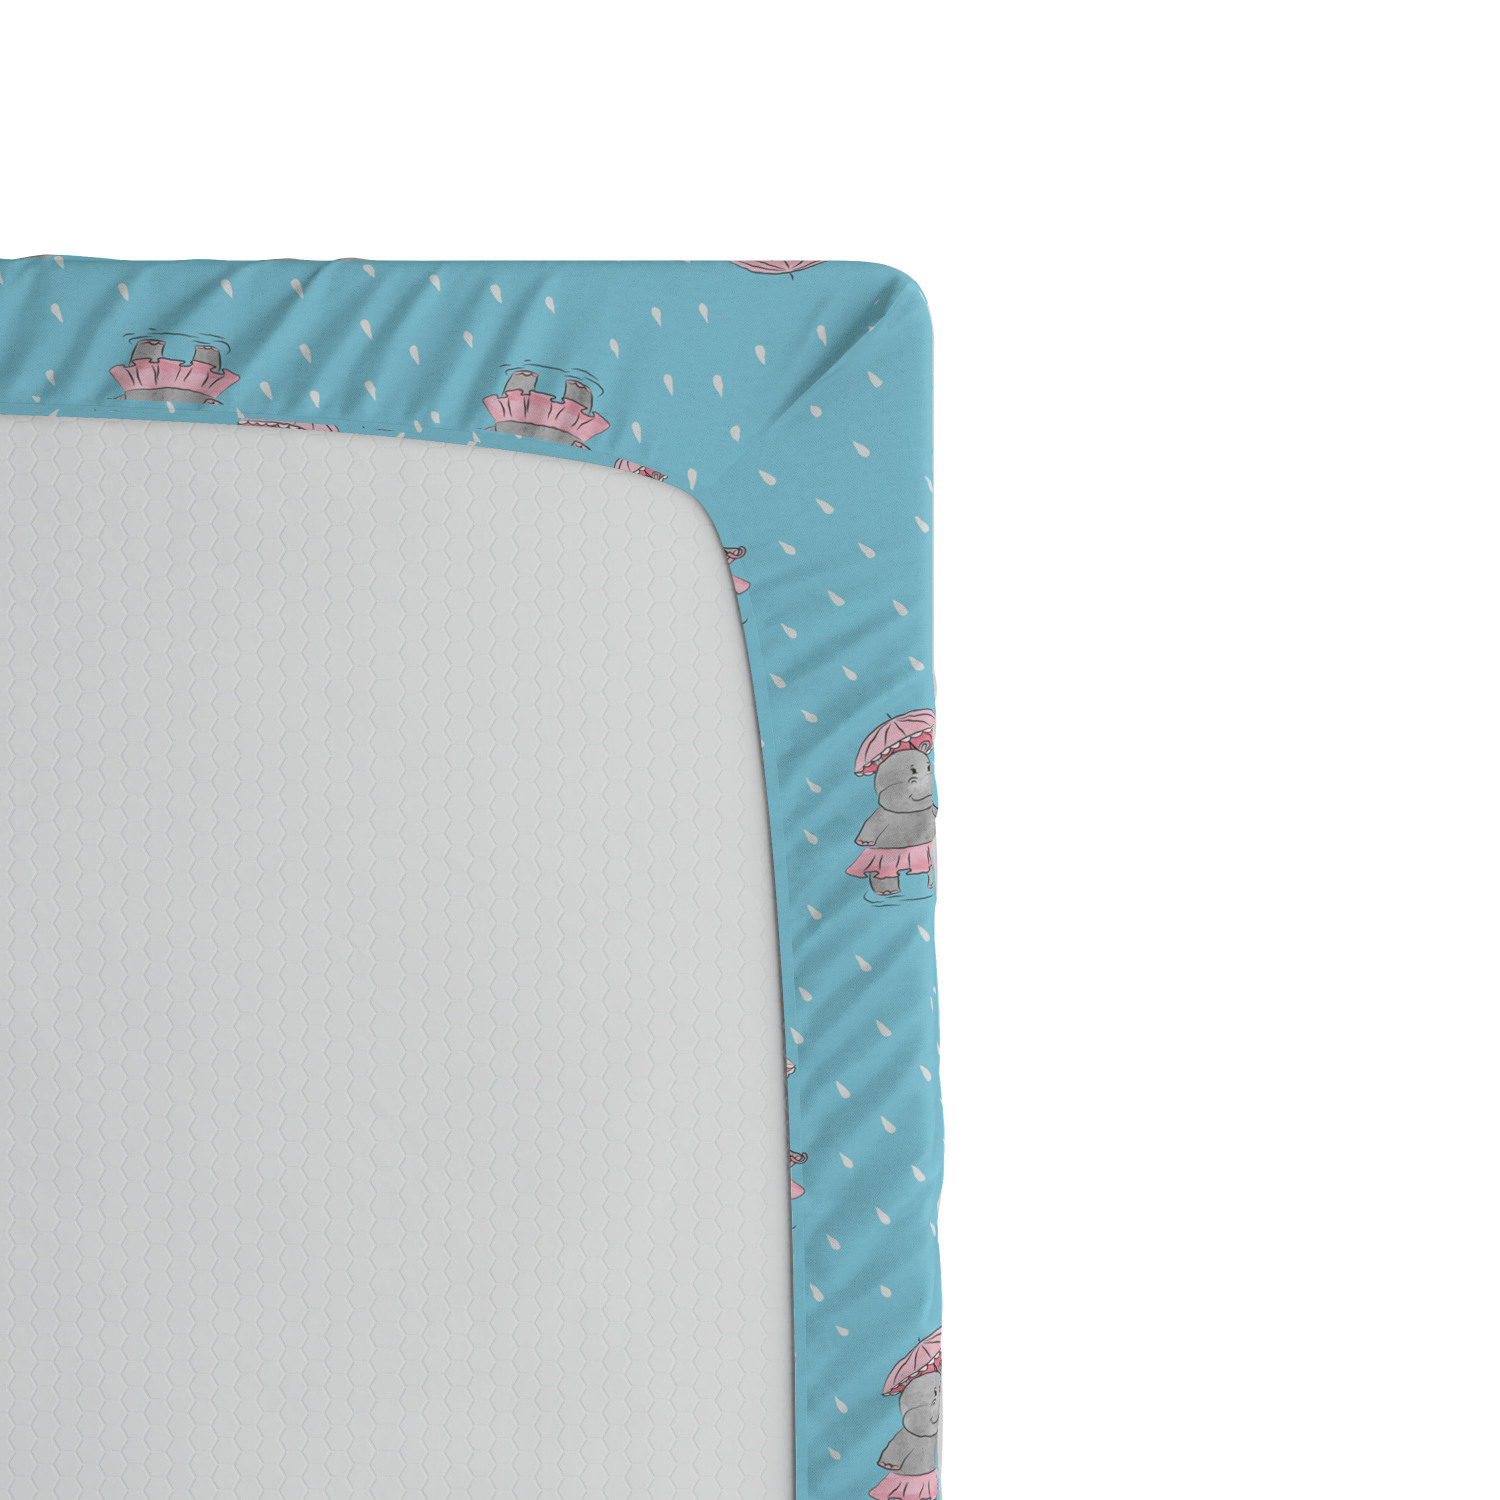 Hippo Fitted Sheet Cover with All-Round Elastic Pocket in 4 Sizes